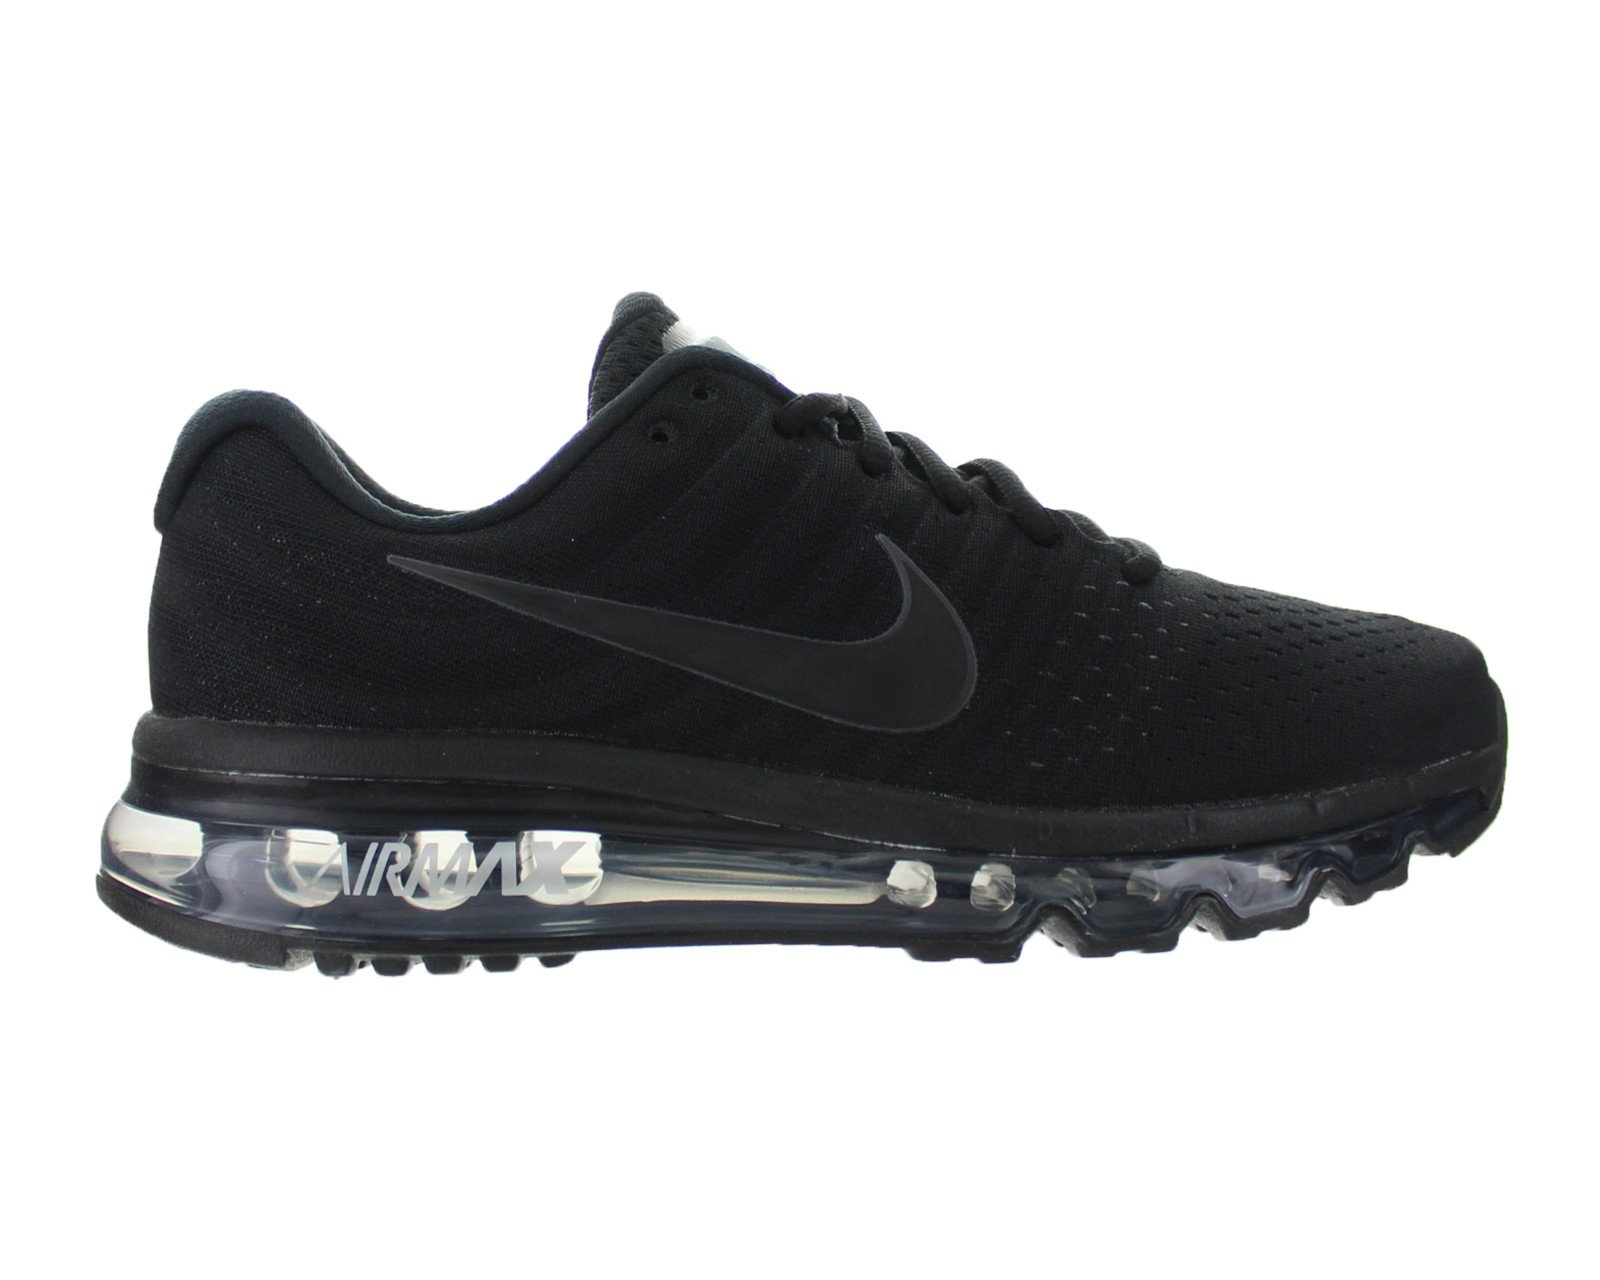 on sale 1a813 0a4d3 Nike - Kids Nike Air Max 2017 GS Triple Black 851622-004 ...